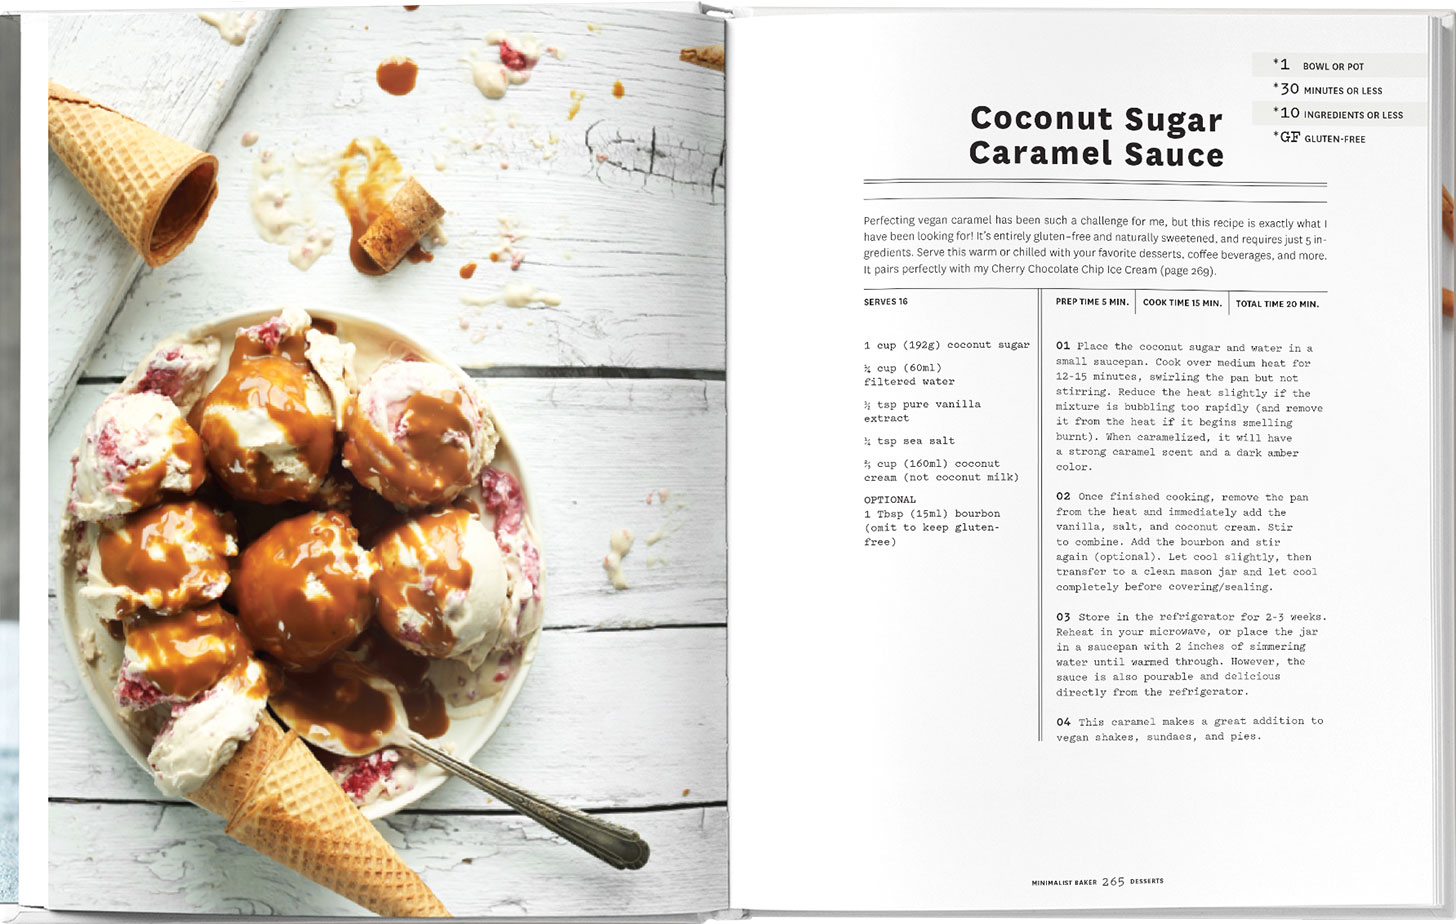 Photo of Coconut Sugar Caramel Sauce from the Minimalist Baker Everyday Cooking Cookbook